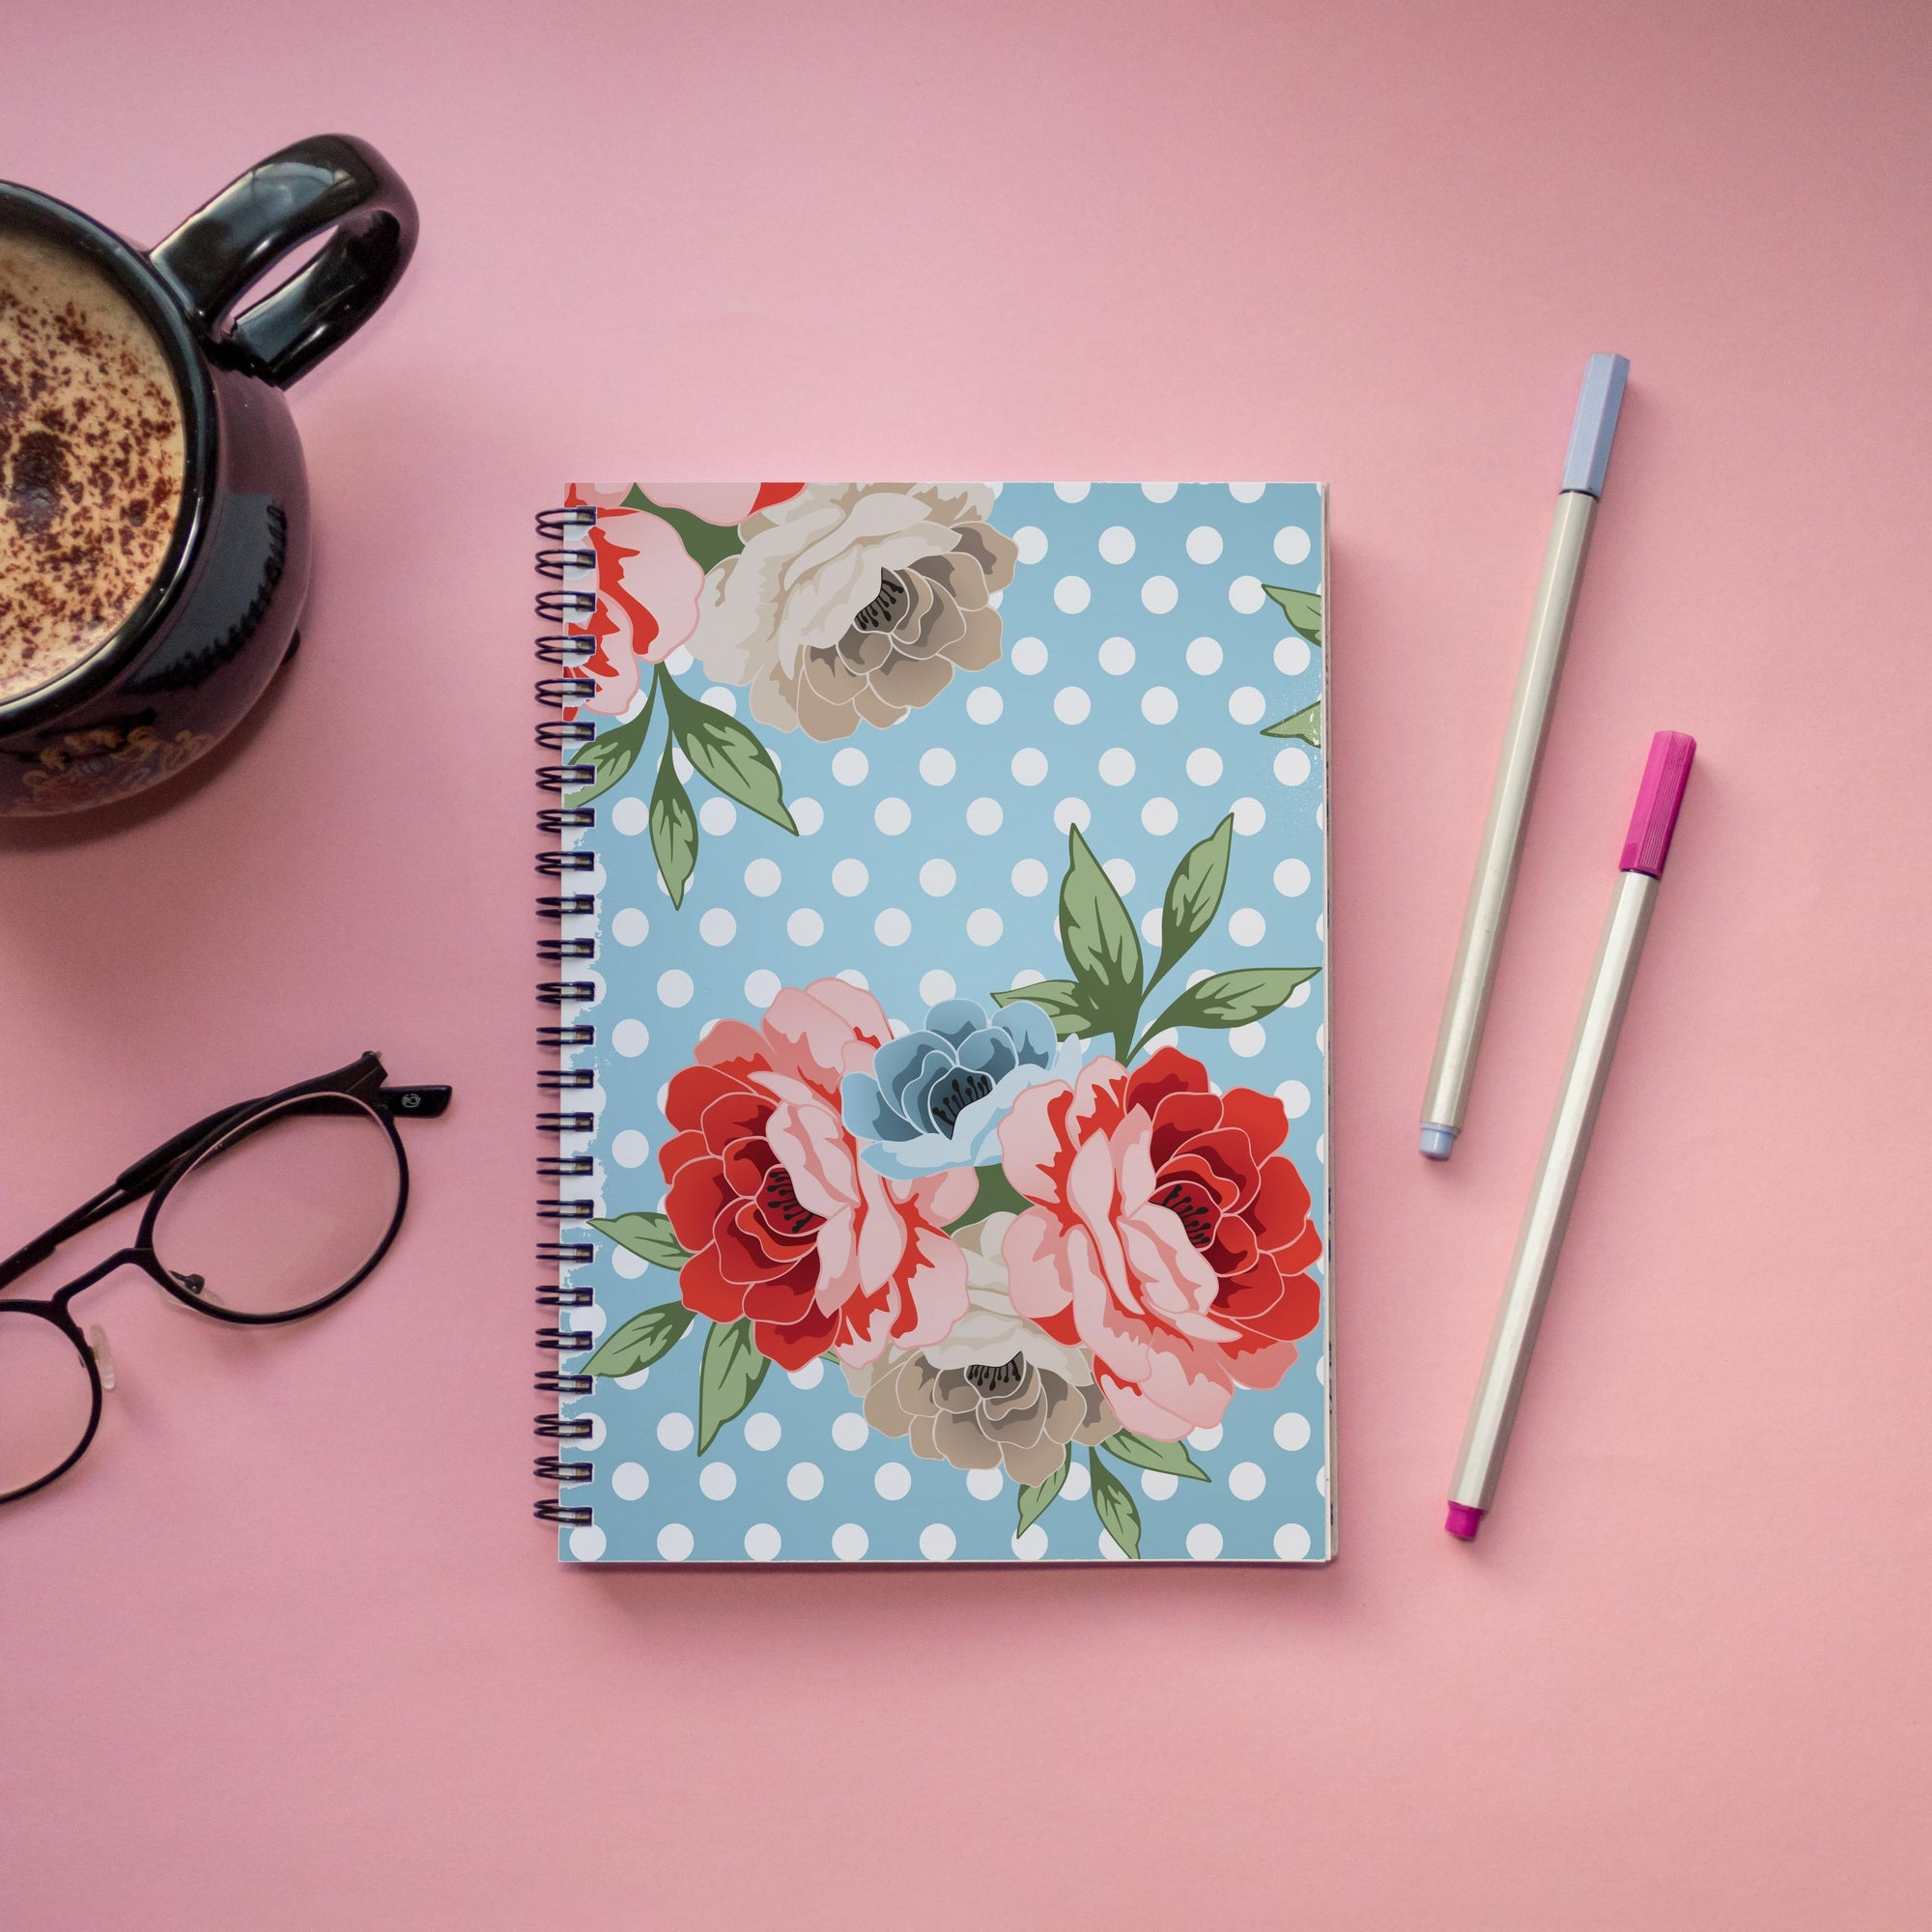 Leanne & Co. Spiral Notebook Polka Dot Roses Spiral Notebook